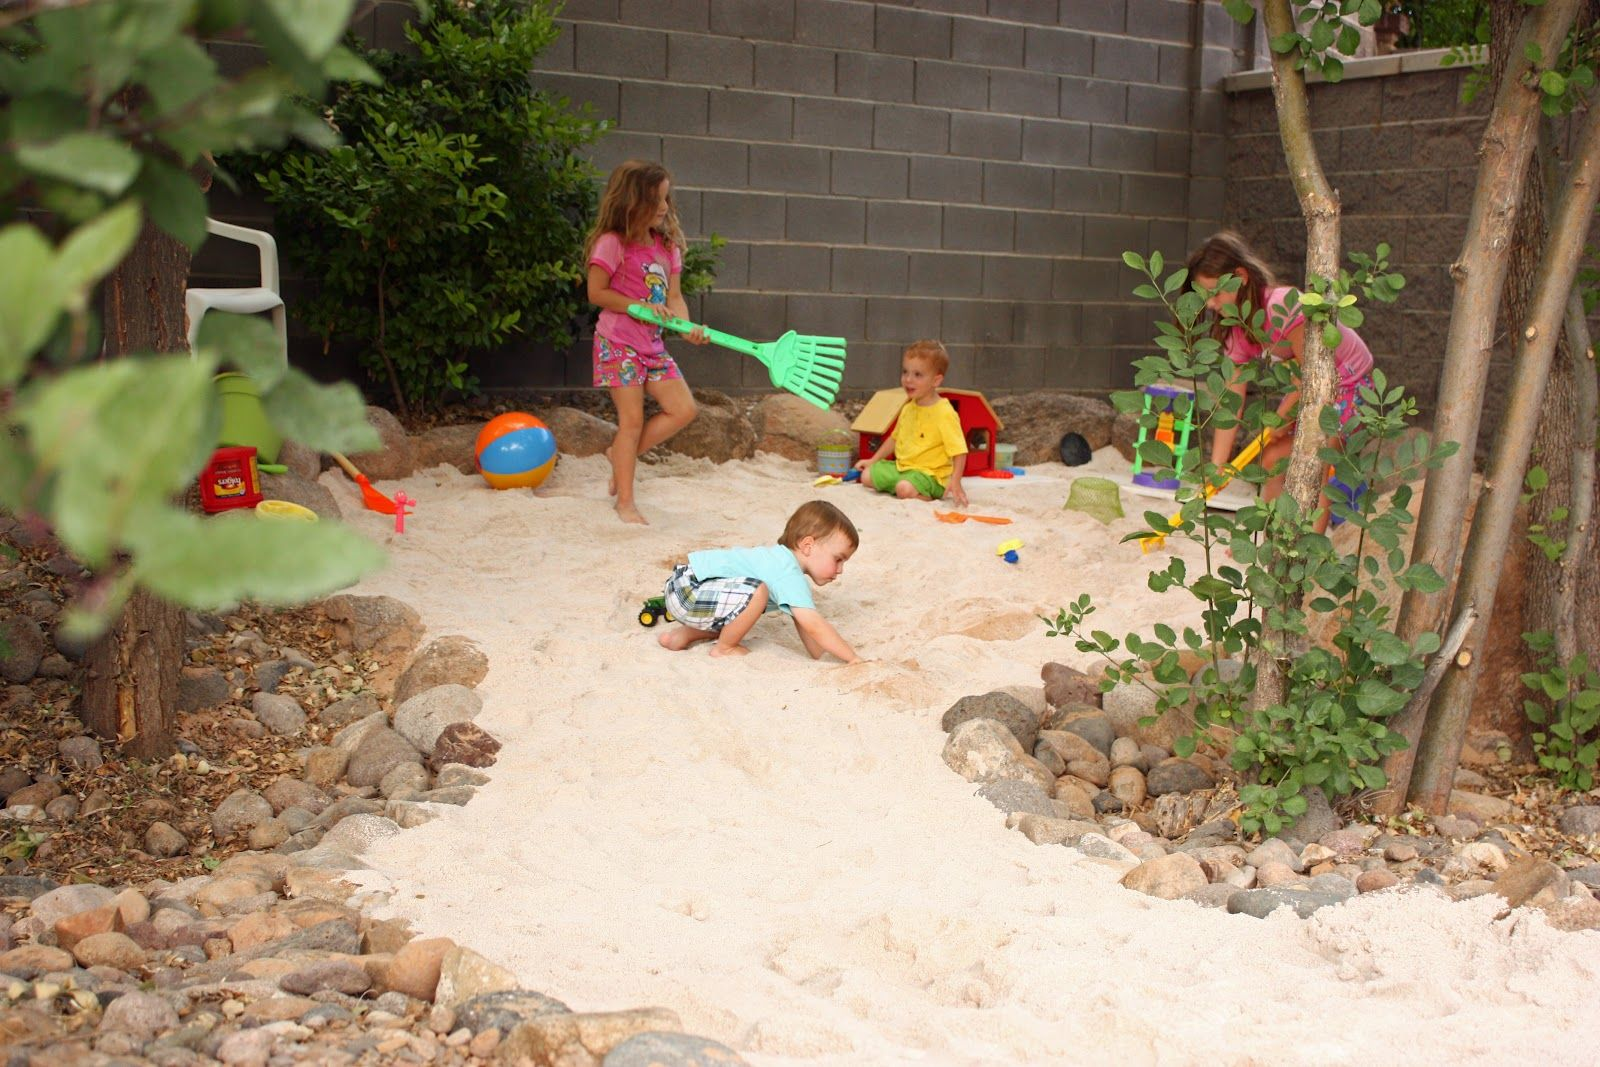 best 25 sand pits for kids ideas on pinterest sandpit sand sand pit and sand box plans. Black Bedroom Furniture Sets. Home Design Ideas